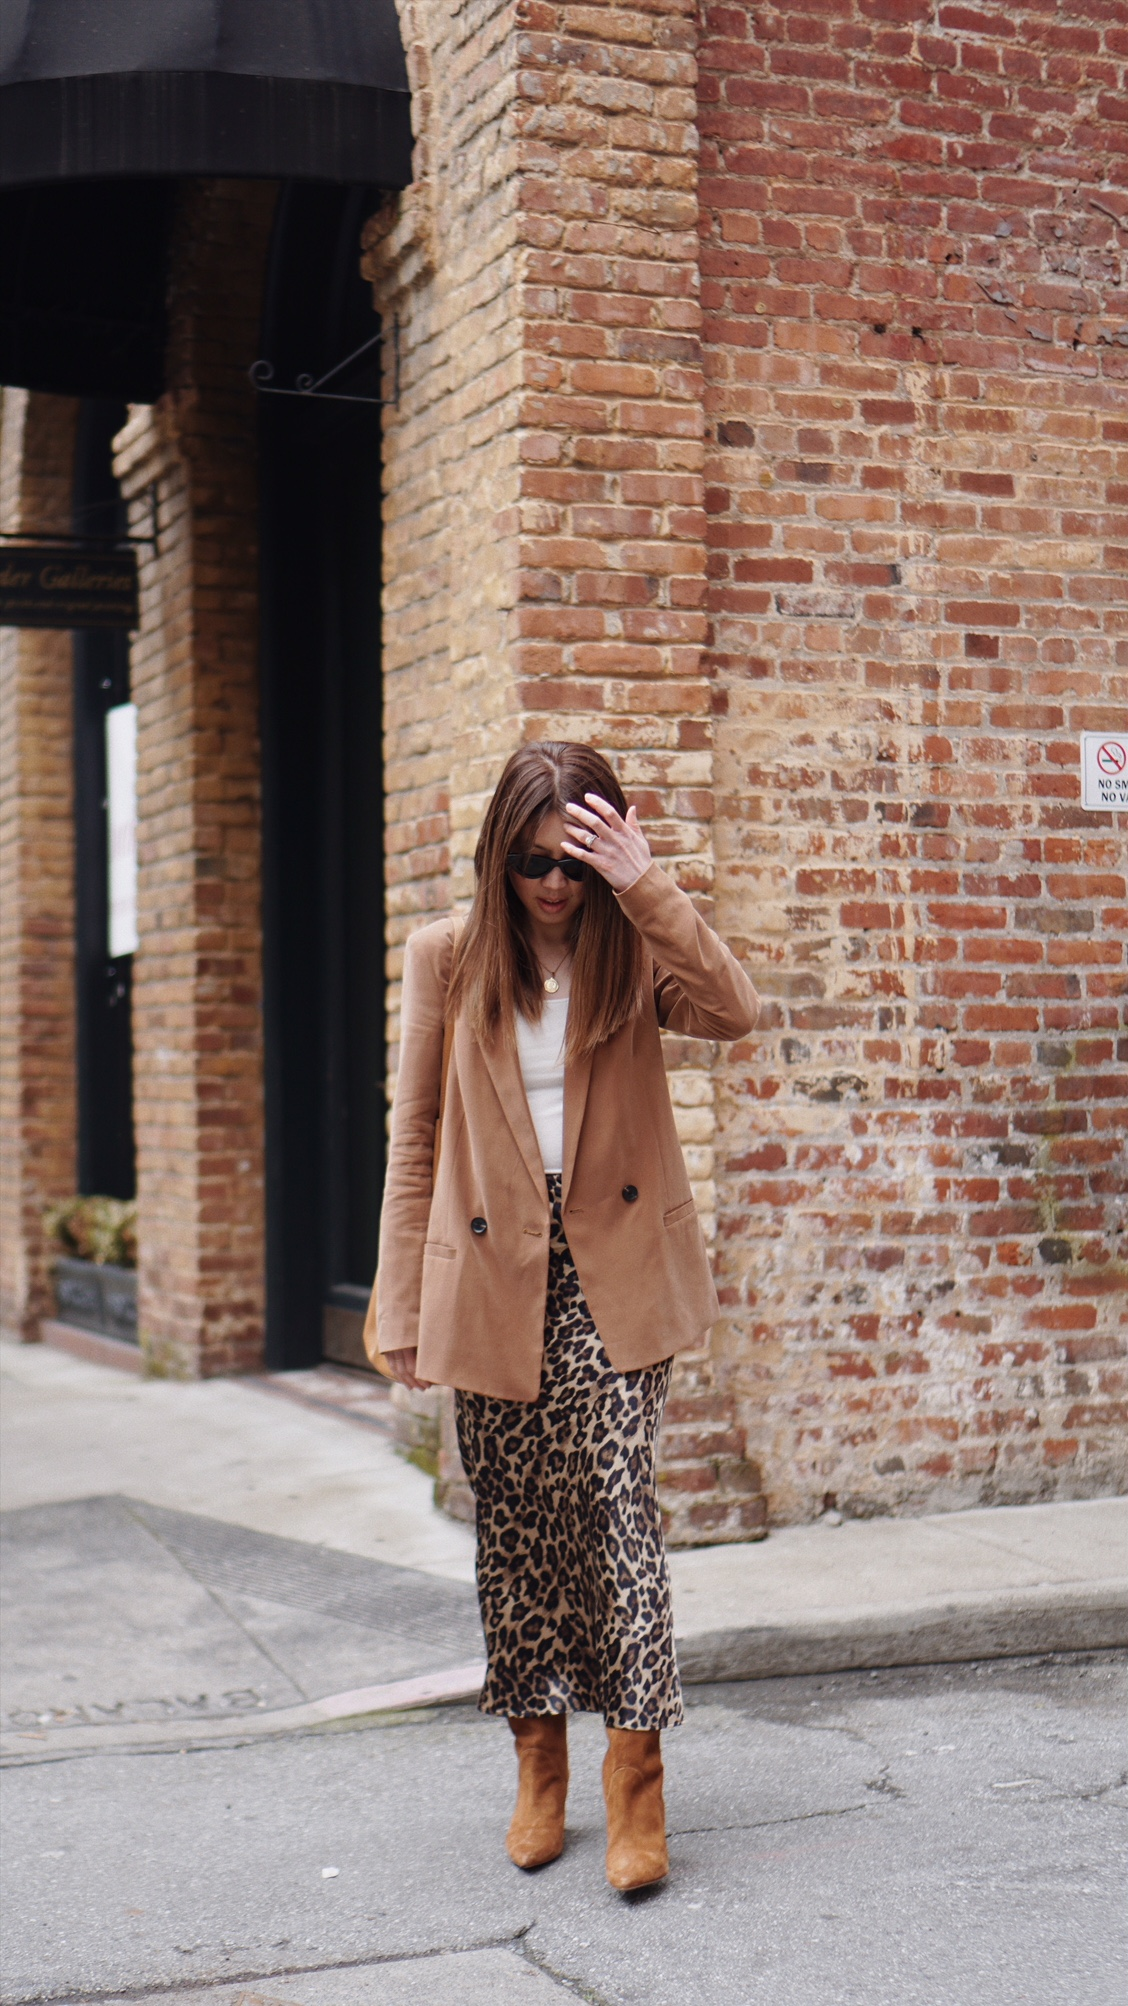 chic-leopard-skirt-outfit.JPG